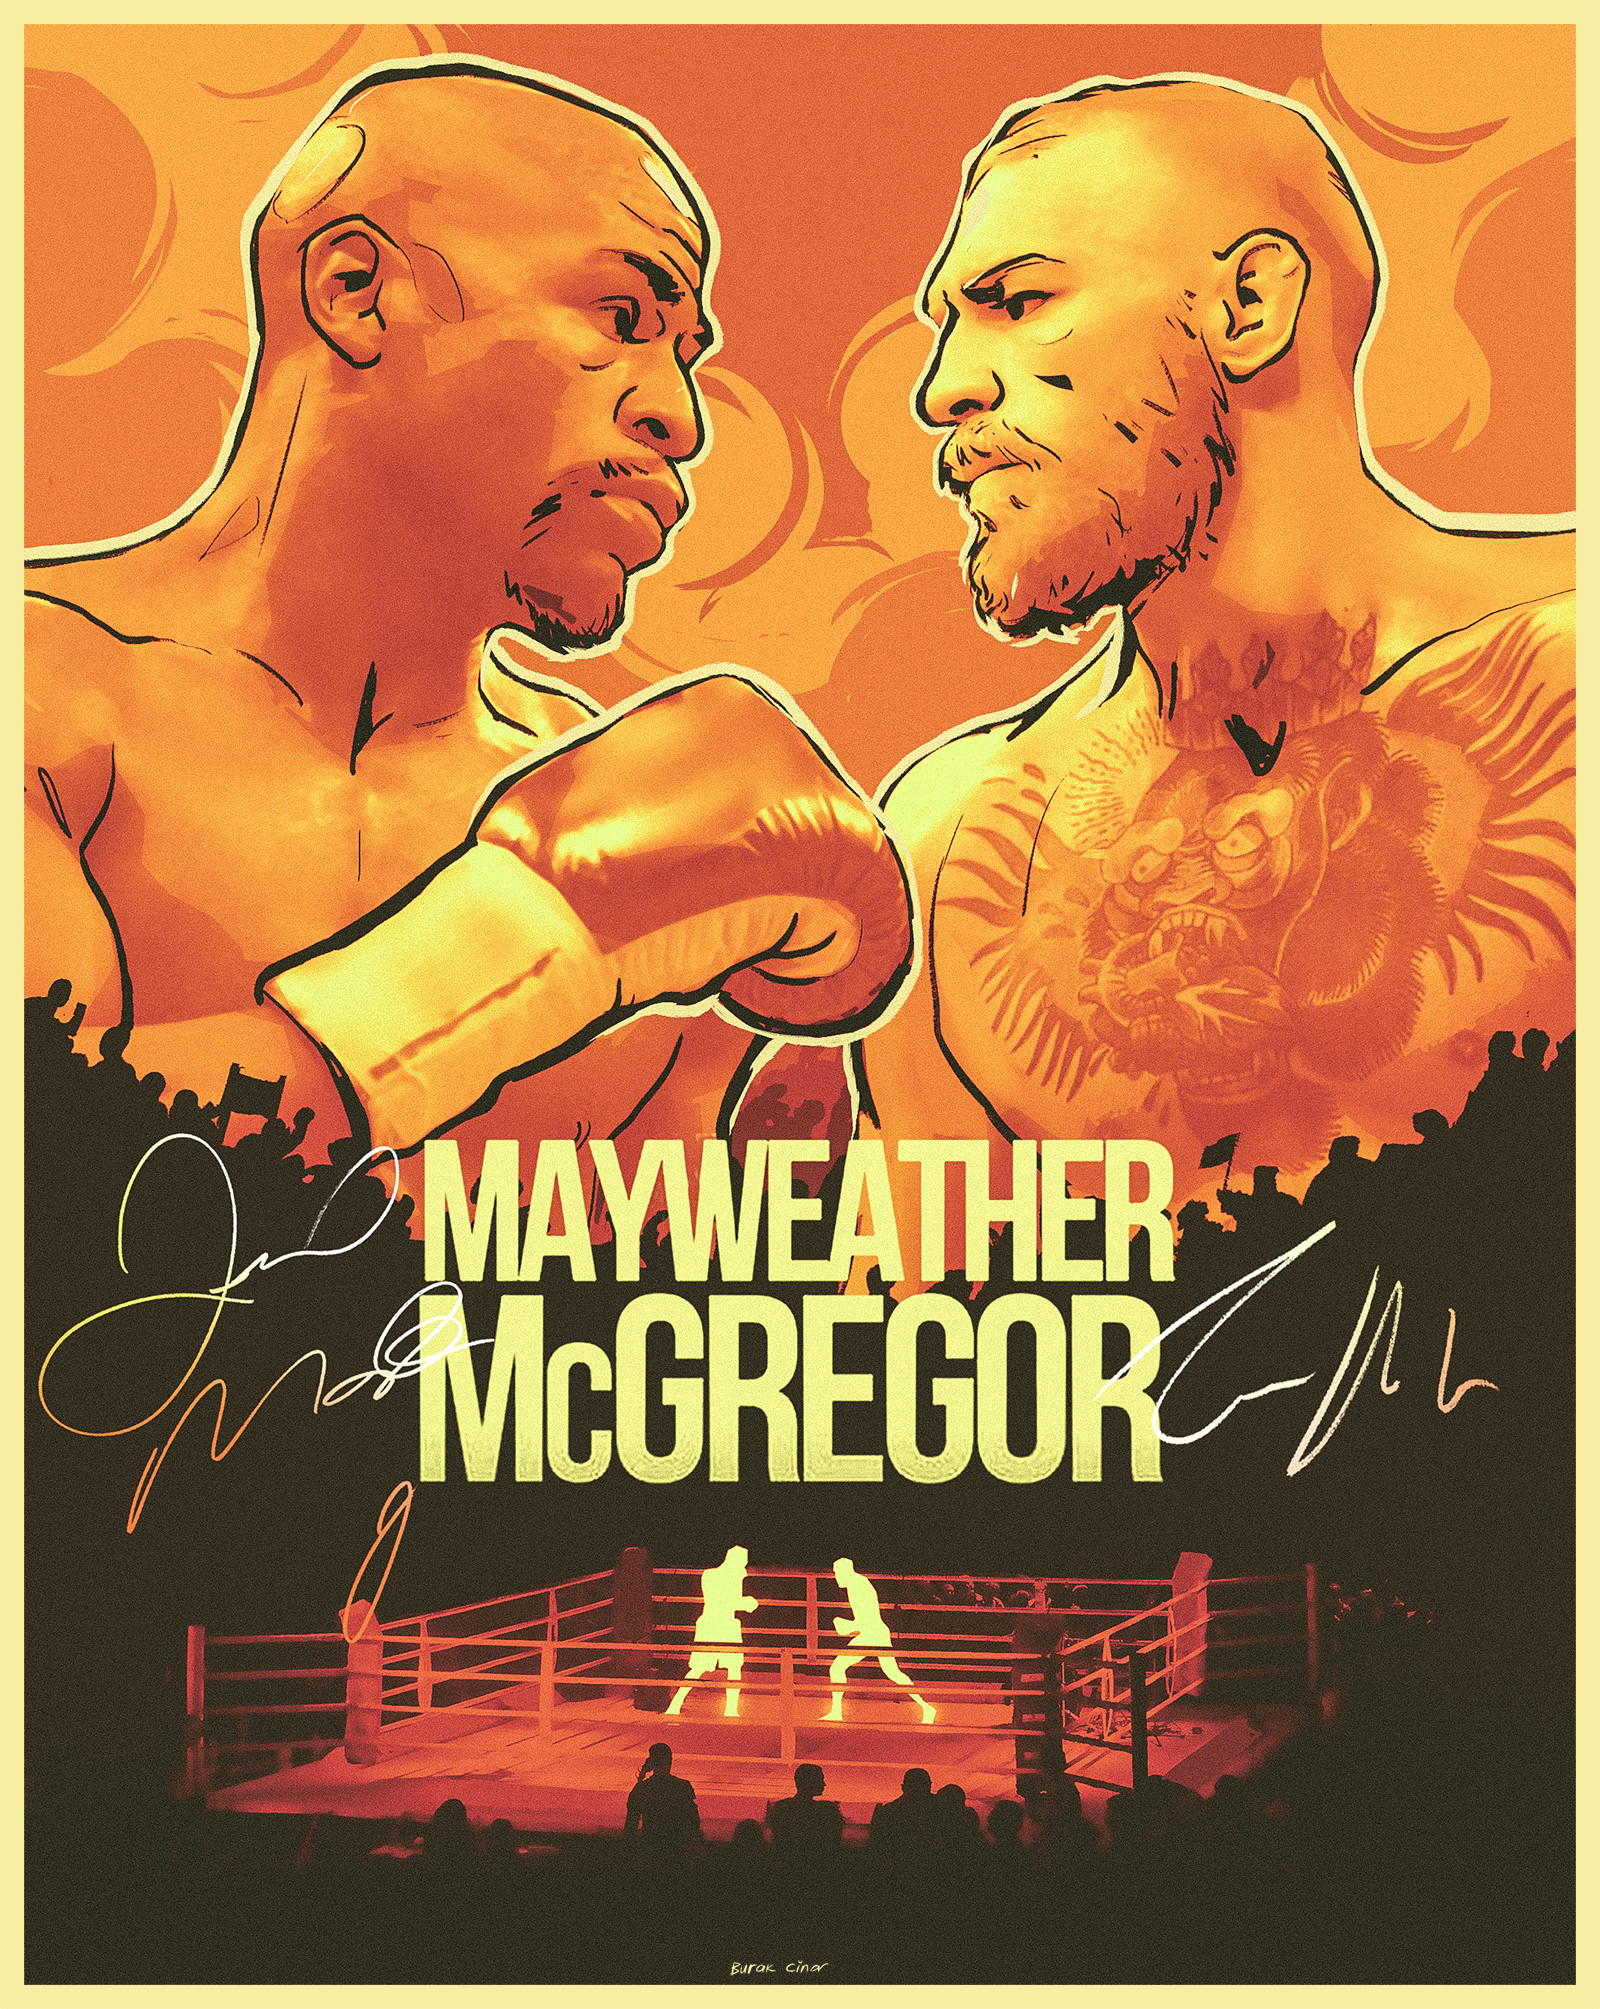 Maywheater vs McGregor poster